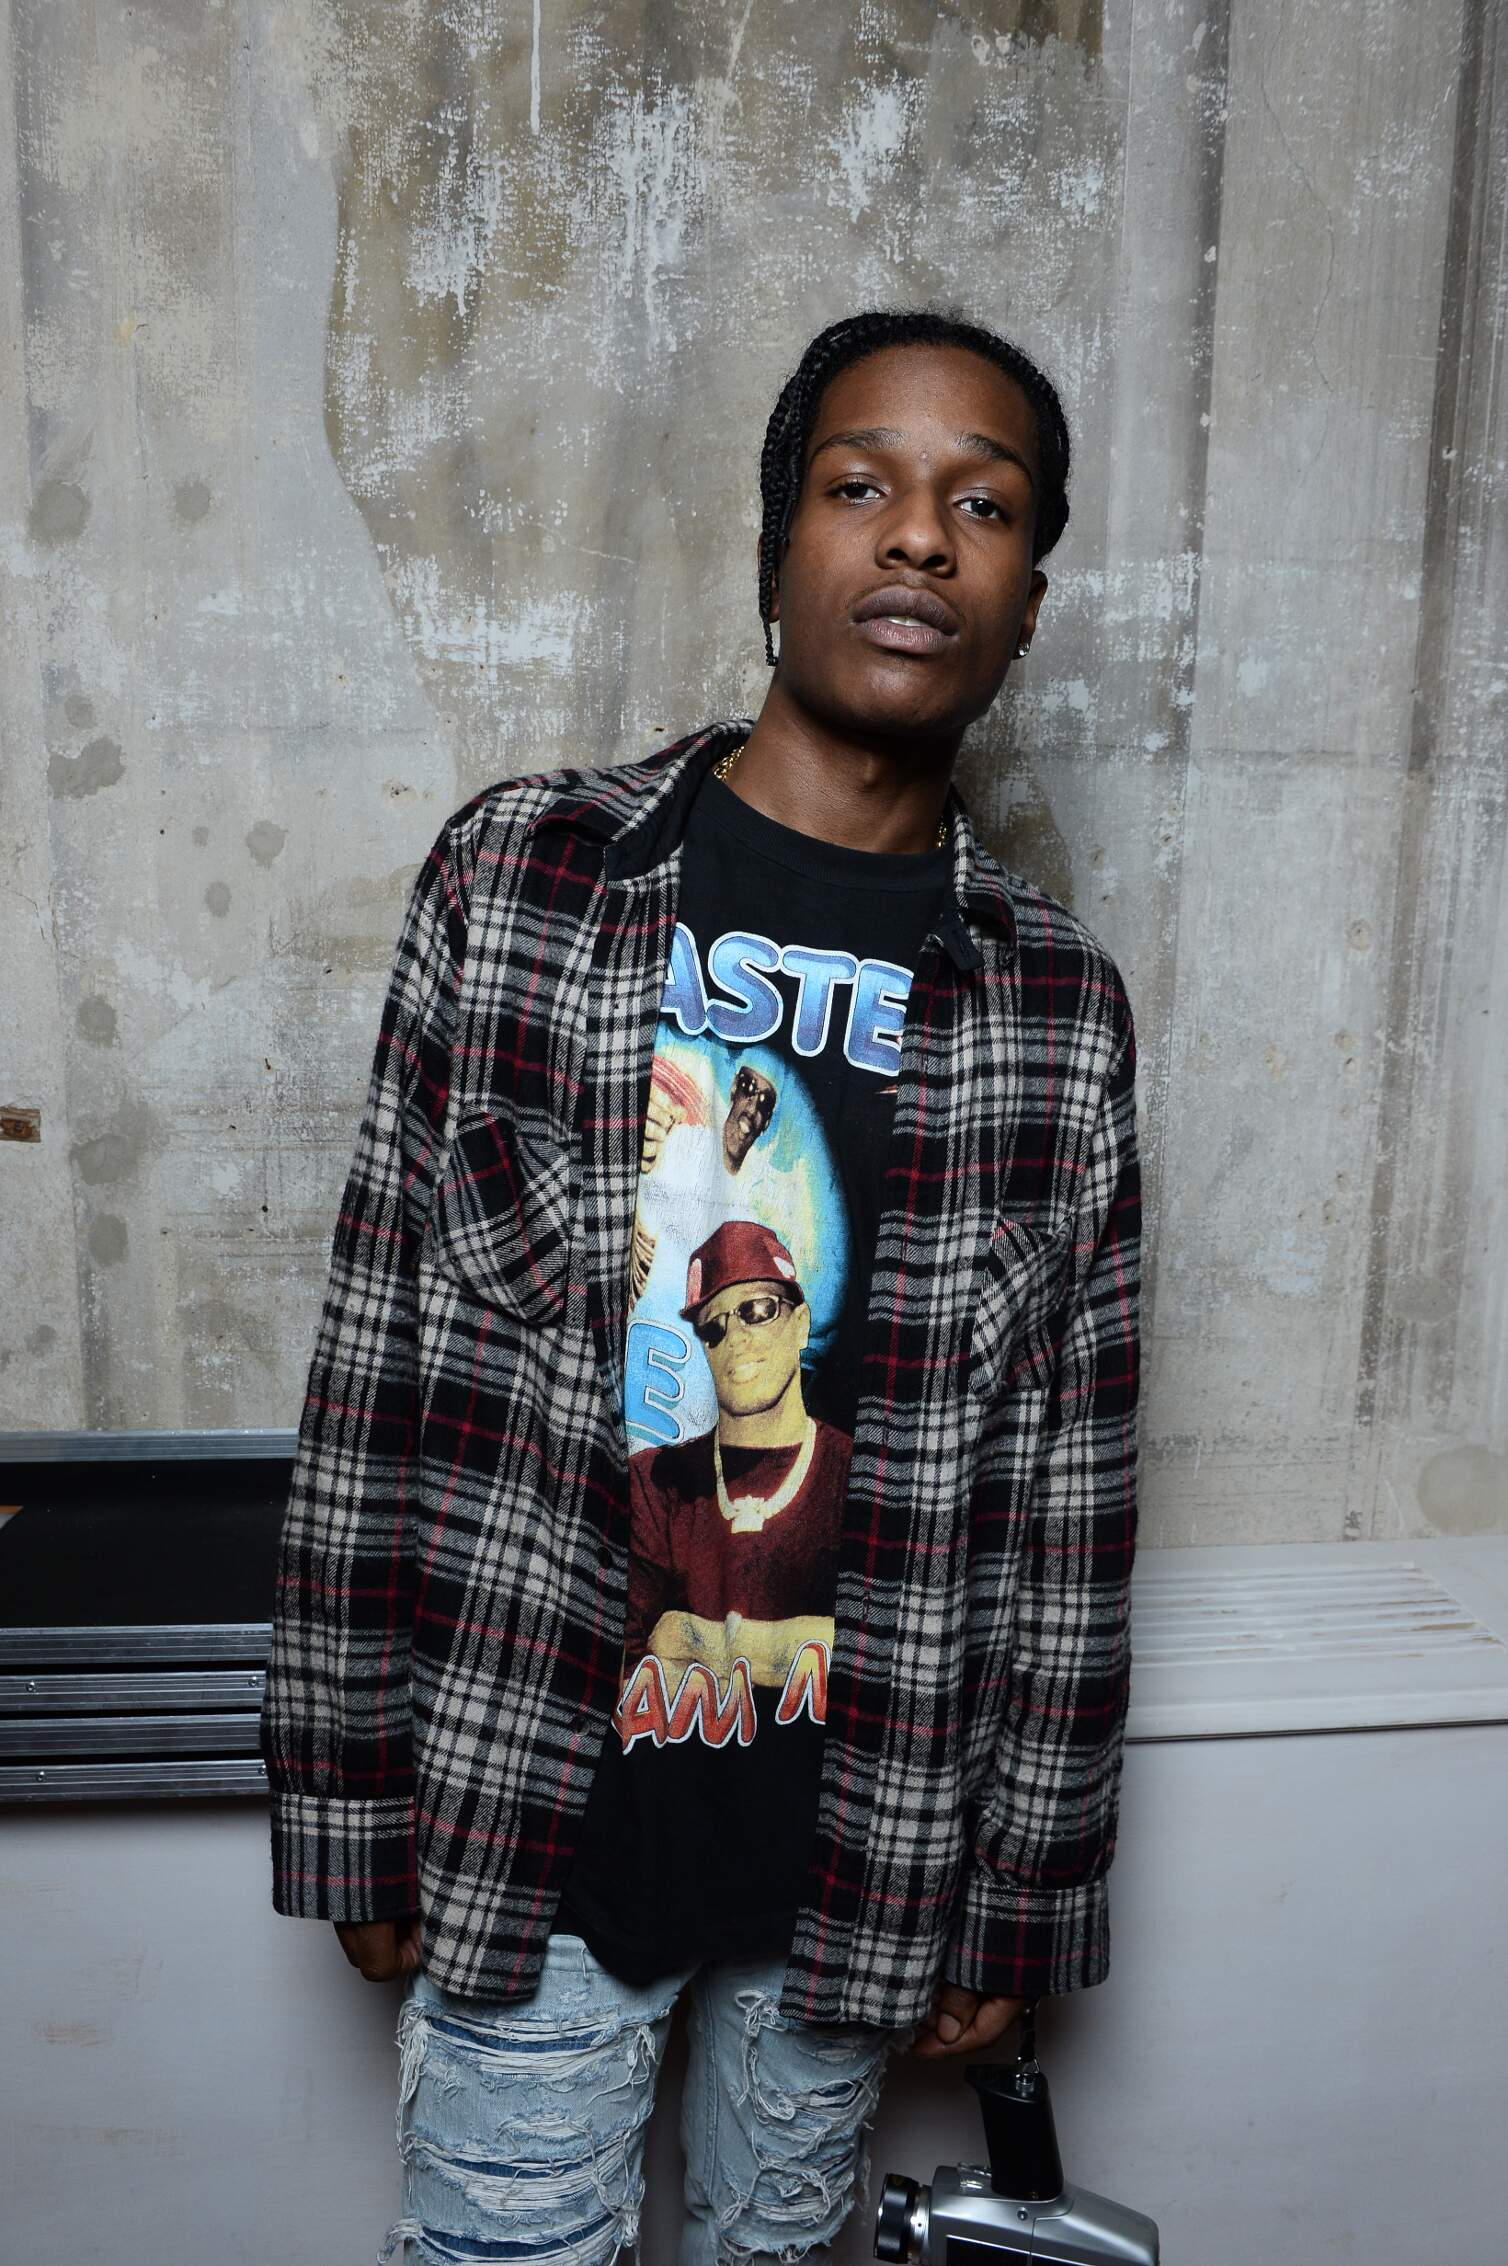 A$ap Rock Moschino Backstage